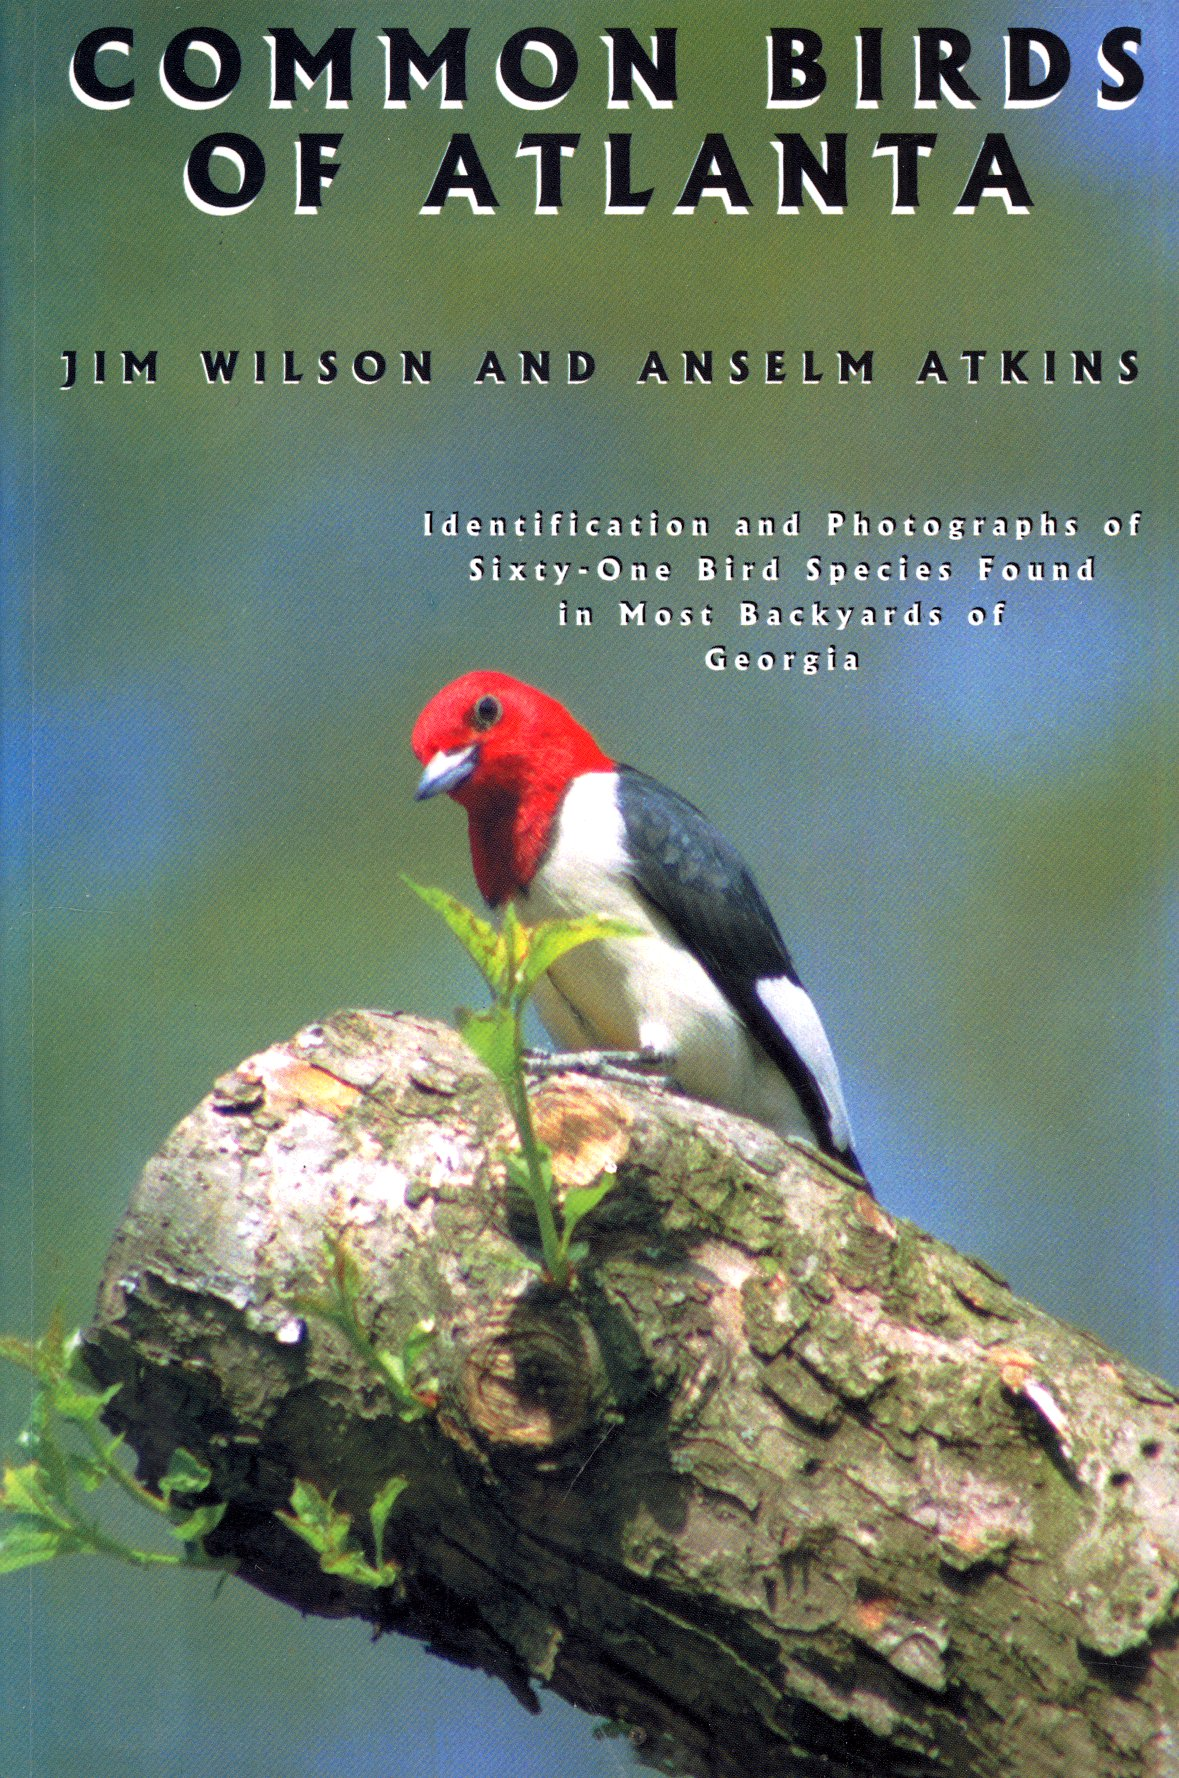 common birds of atlanta jim wilson 9780966724011 amazon com books